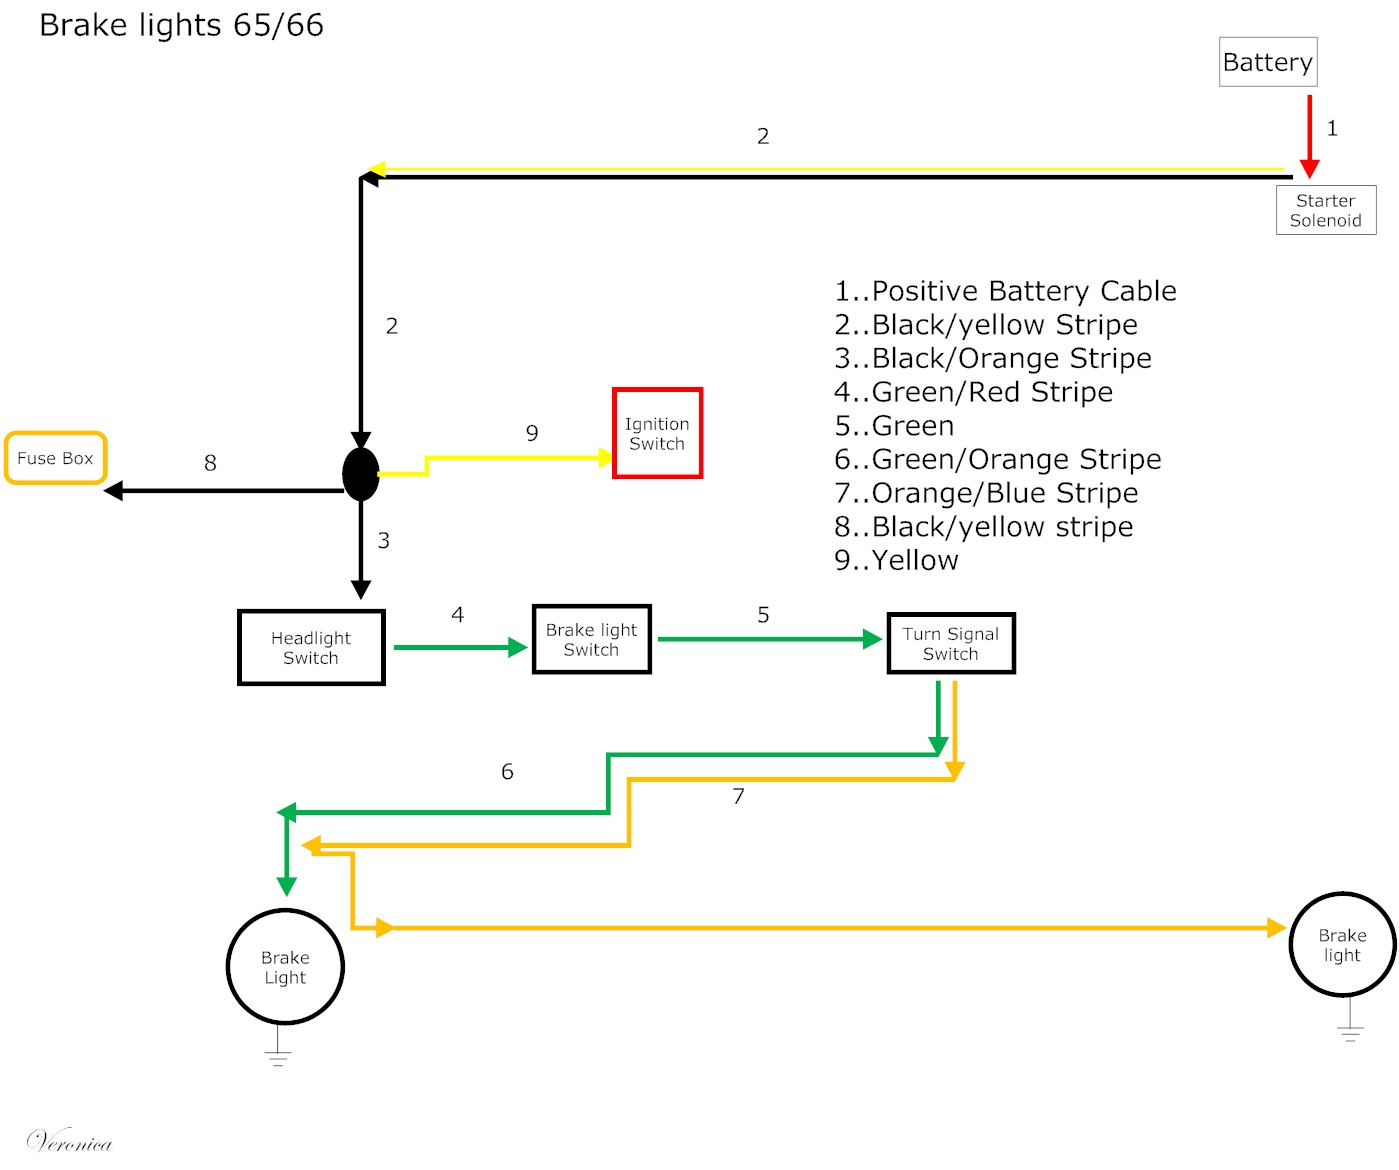 1966 mustang dash light wiring diagram molecular orbital energy level for o2 the care and feeding of ponies diagrams